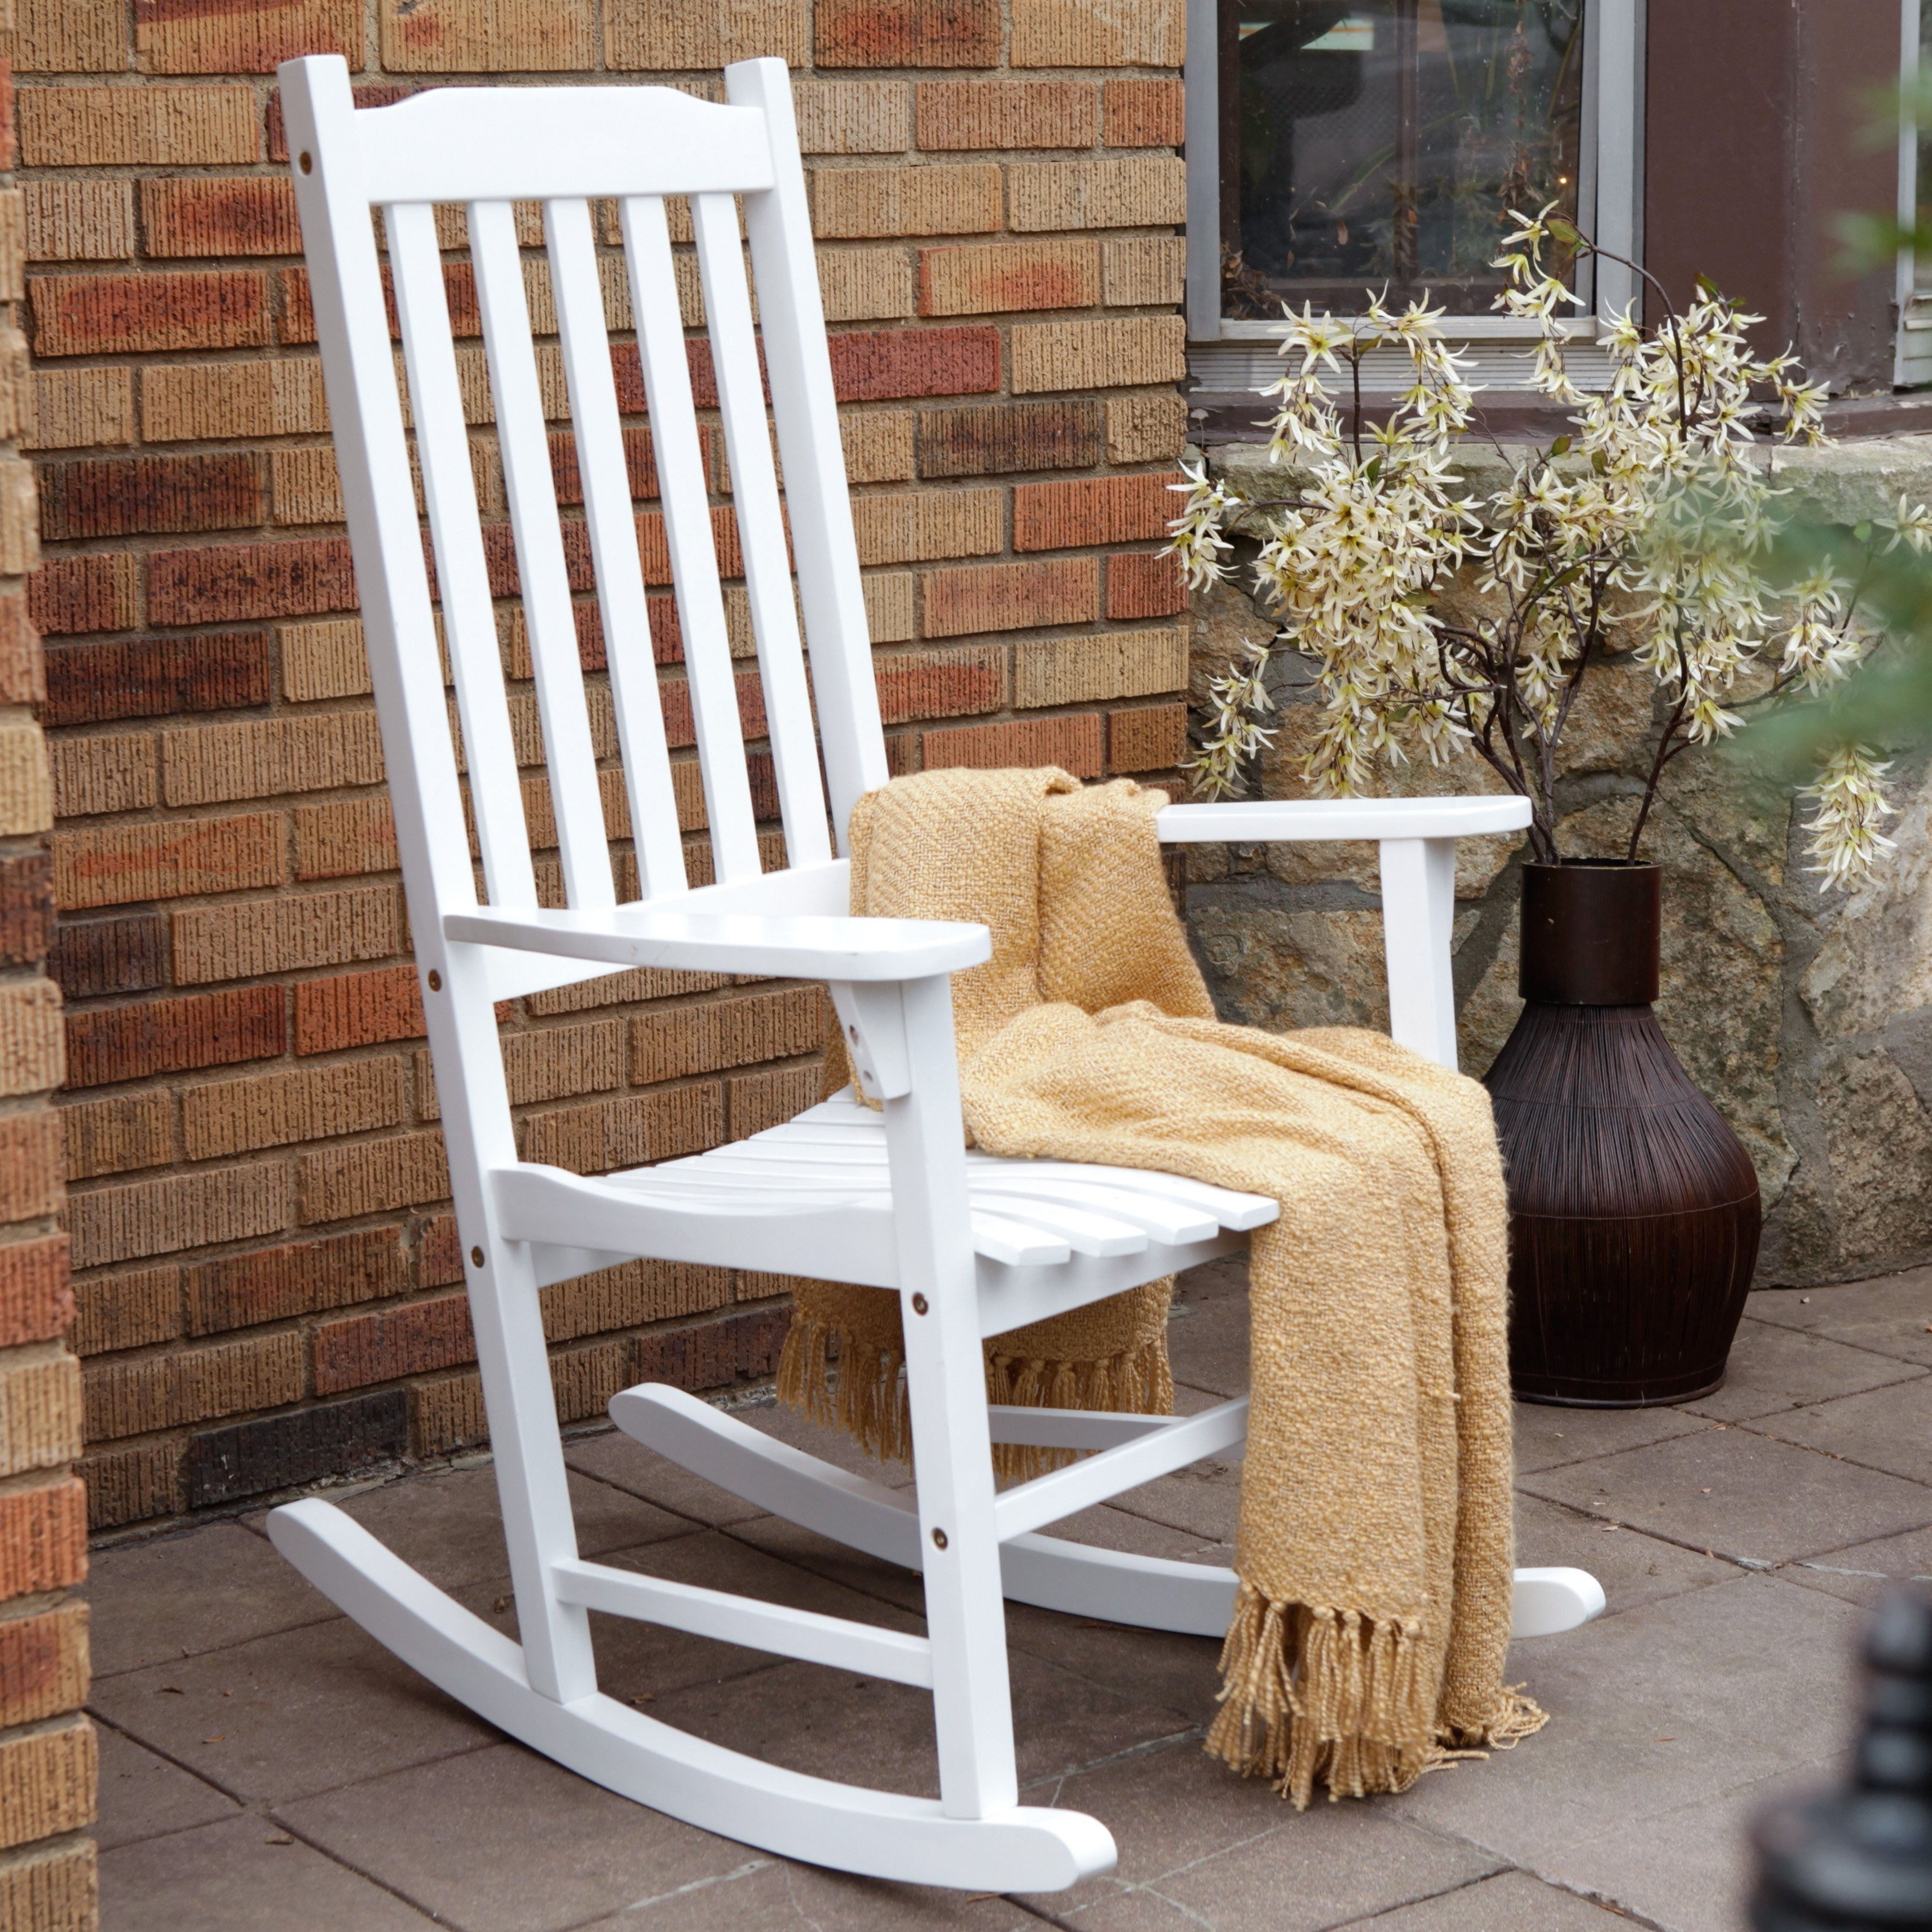 Coral Coast Indooroutdoor Mission Slat Rocking Chair White Pertaining To Widely Used Small Patio Rocking Chairs (View 4 of 20)